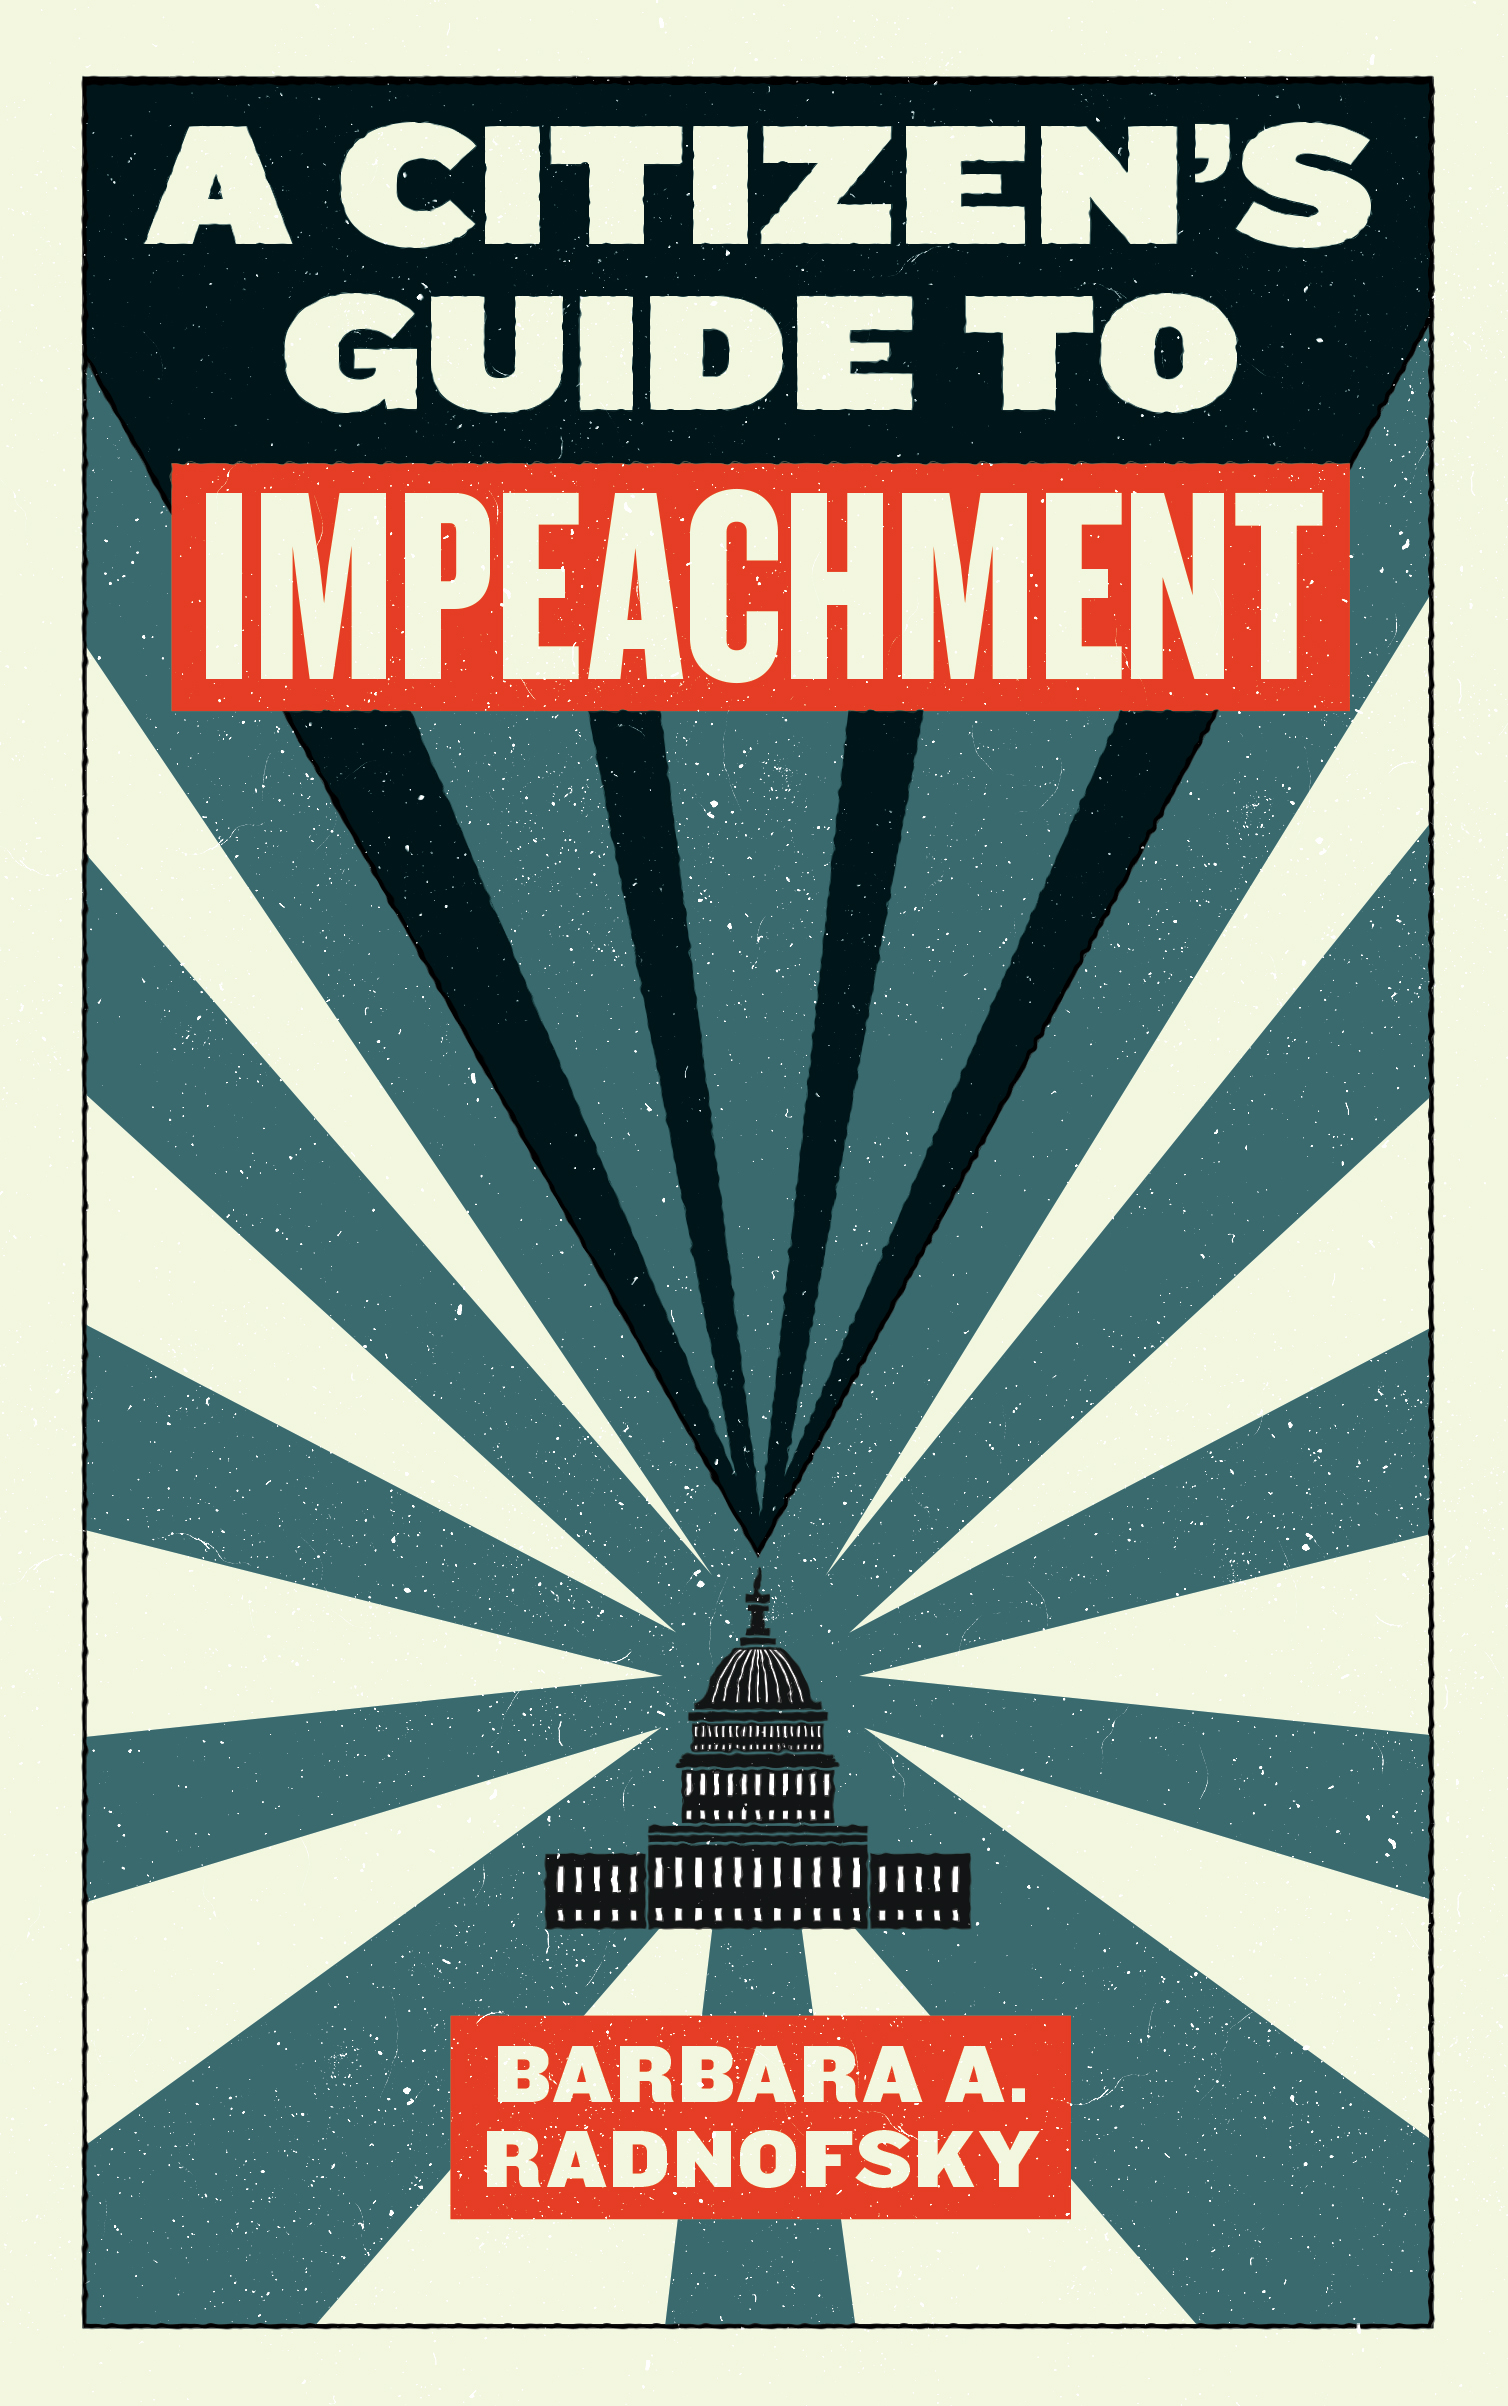 Barbara A. Radnofsky, author of A Citizen's Guide to Impeachment, on high crimes and misdemeanors